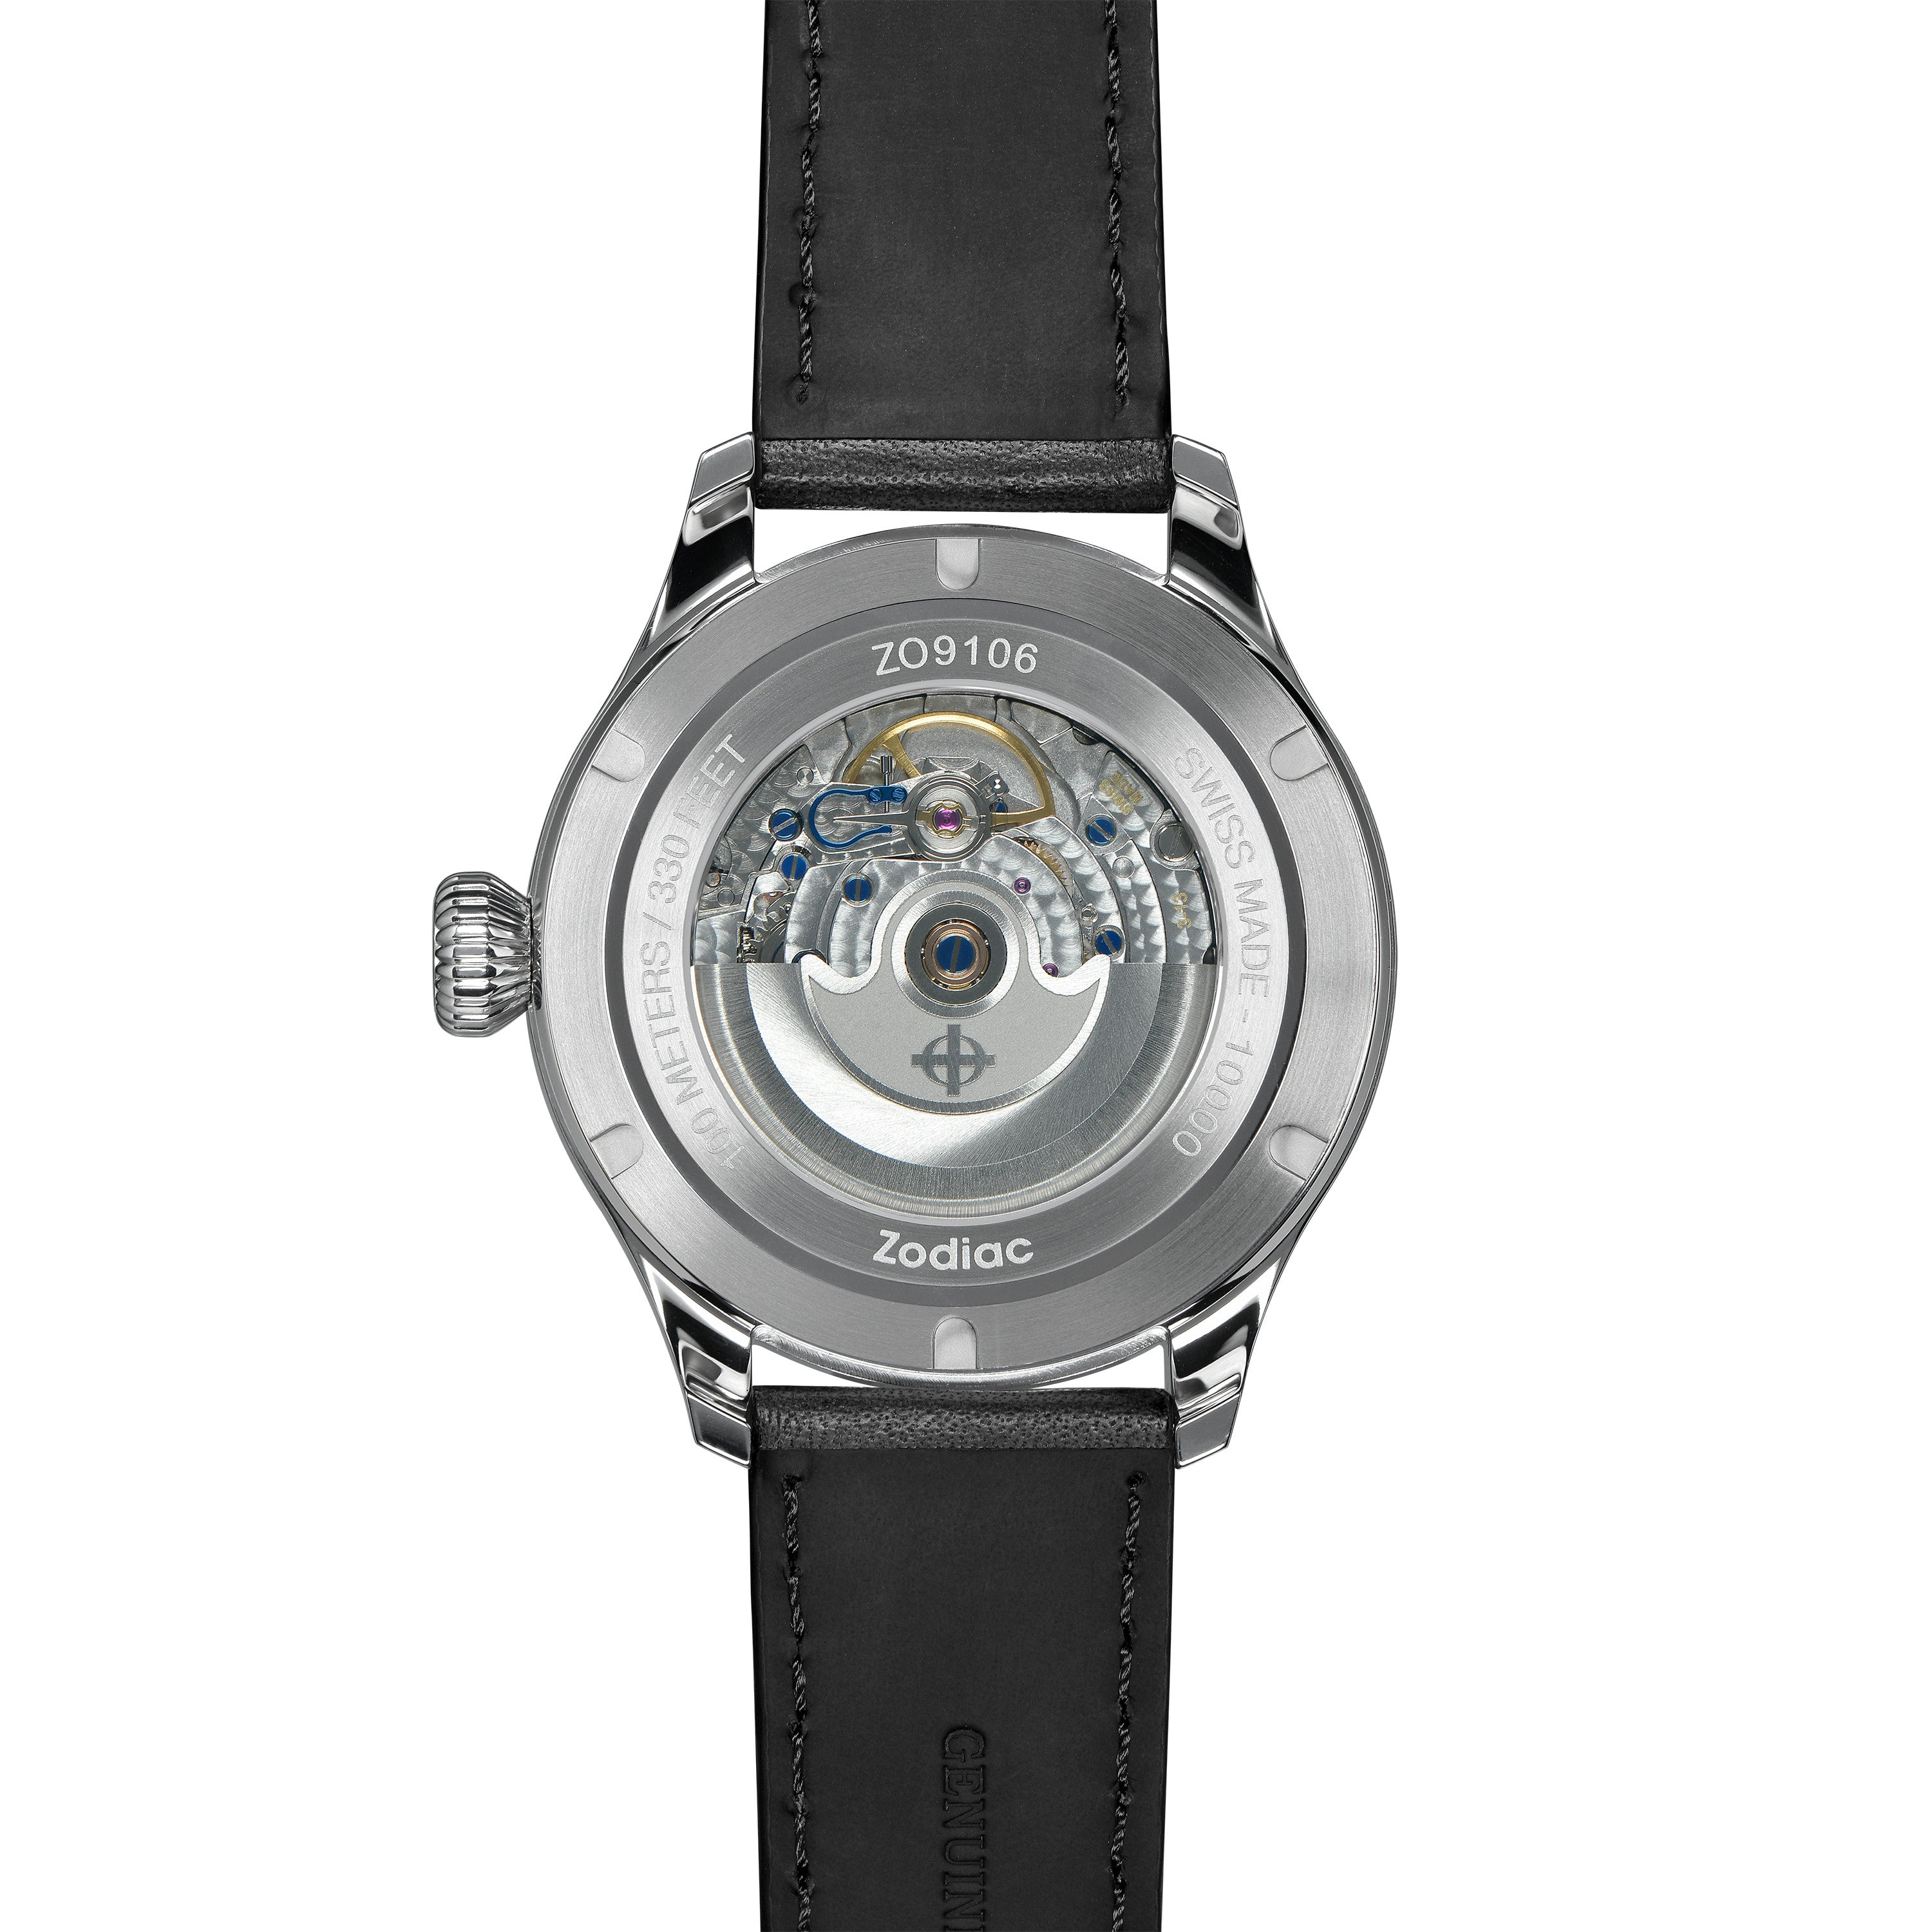 JETOMATIC AUTOMATIC BLACK LEATHER WATCH